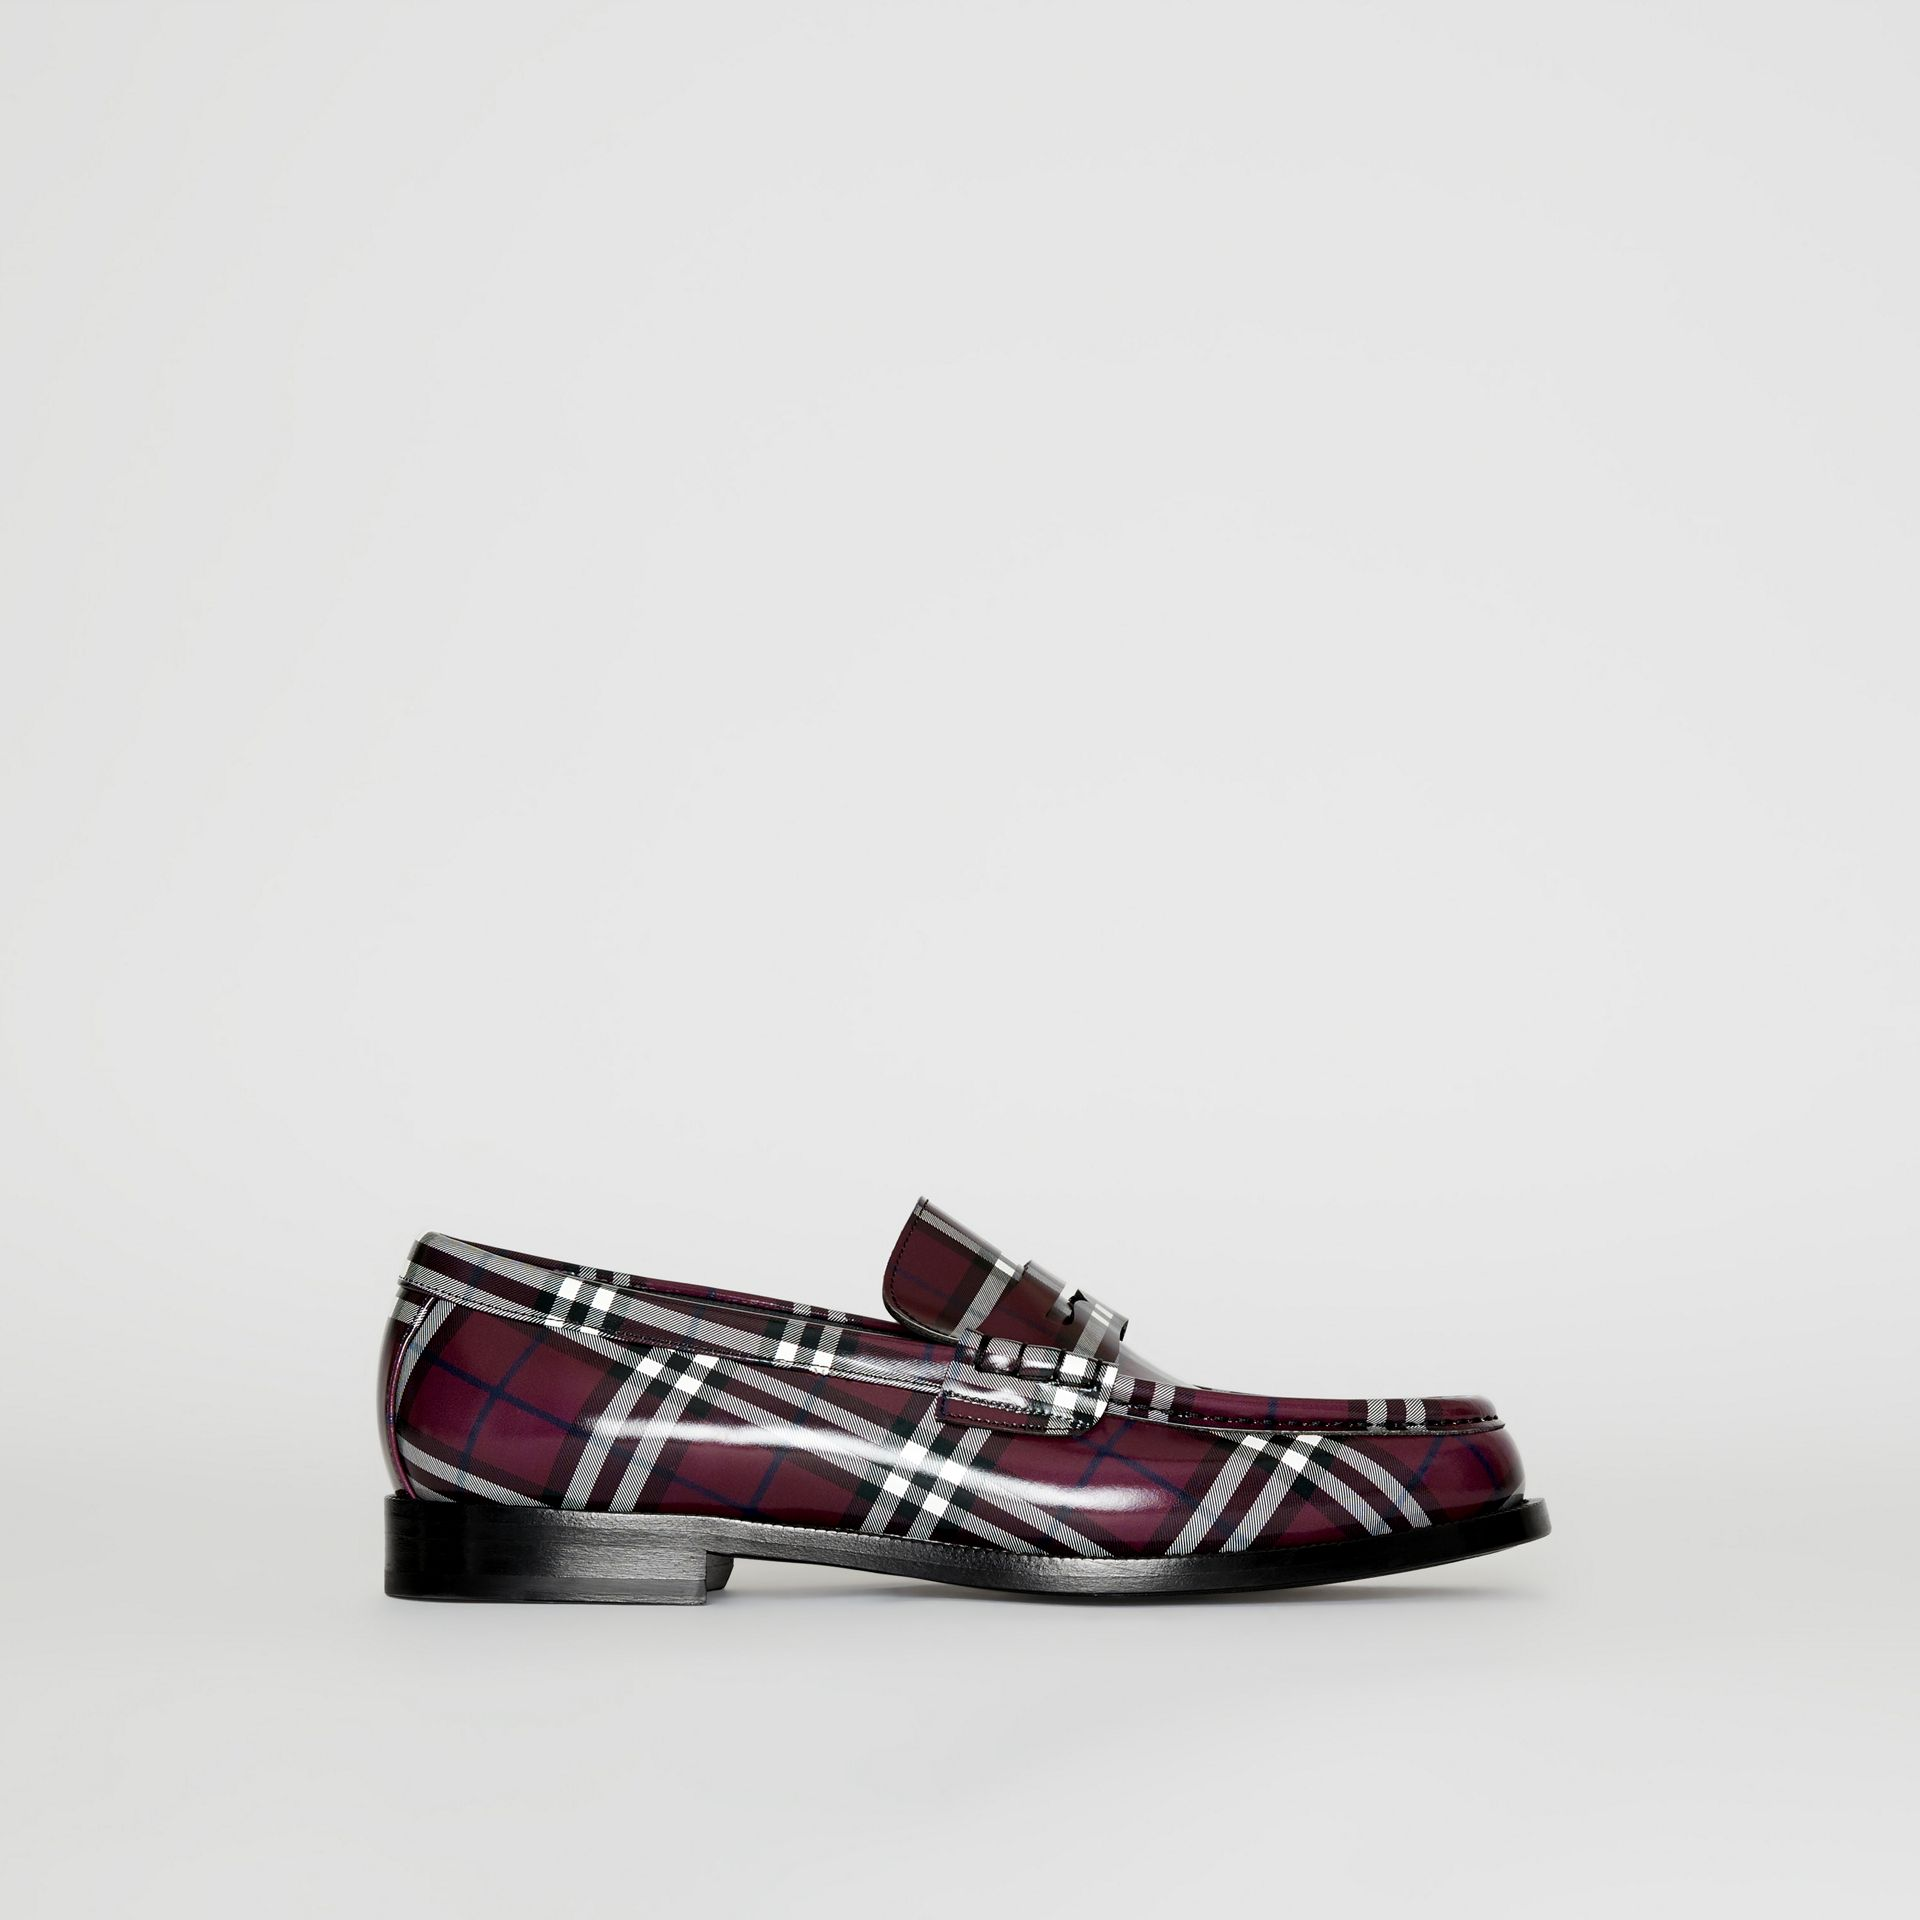 Gosha x Burberry Check Leather Loafers in Claret - Men | Burberry - gallery image 2